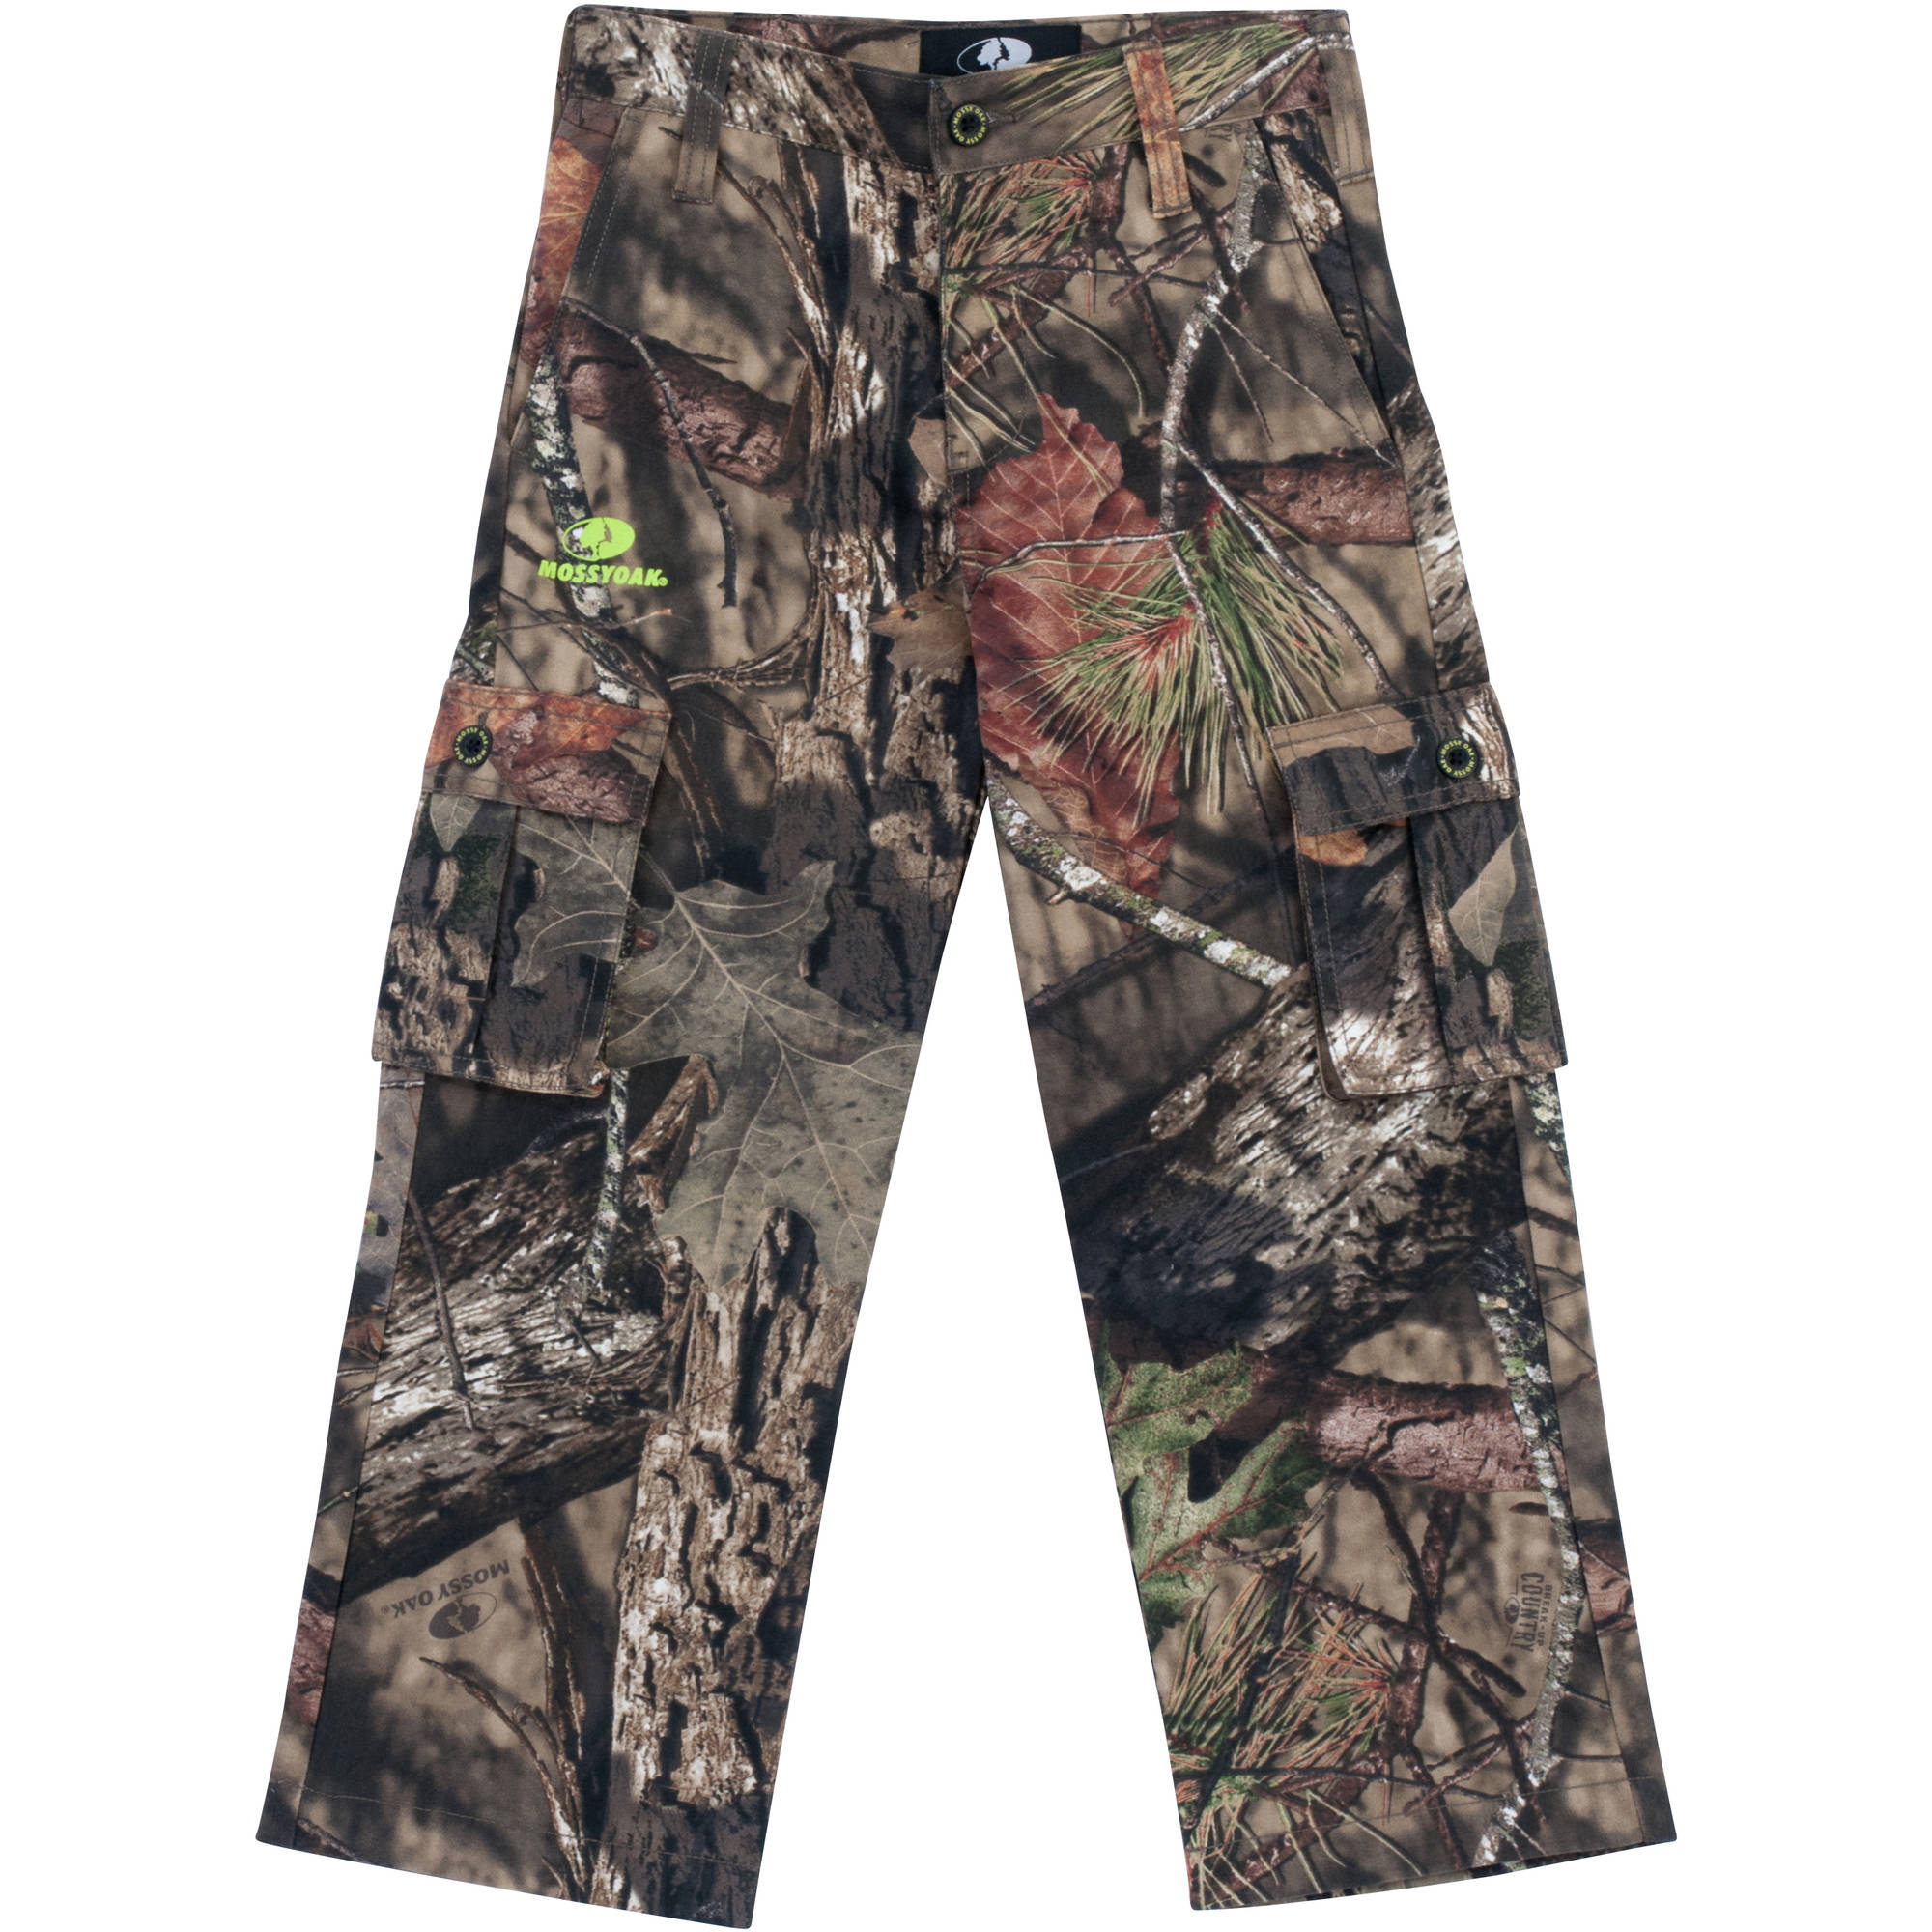 Youth Cargo Pants, Available in Realtree and Mossy Oak